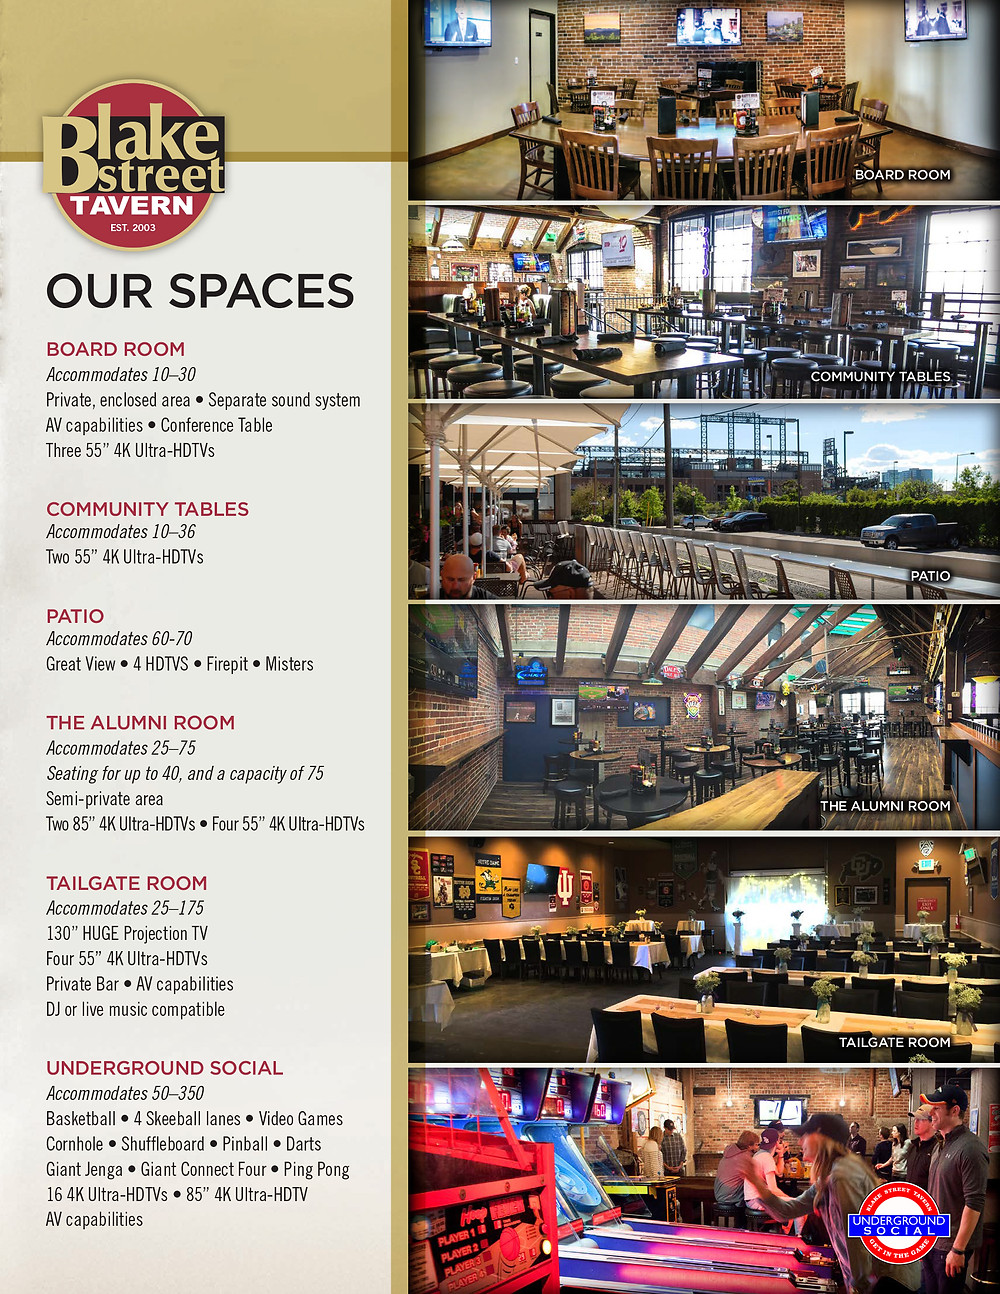 Denver Holiday Party Venues - Blake Street Tavern has no room rental fees and a great Buffet food selection!